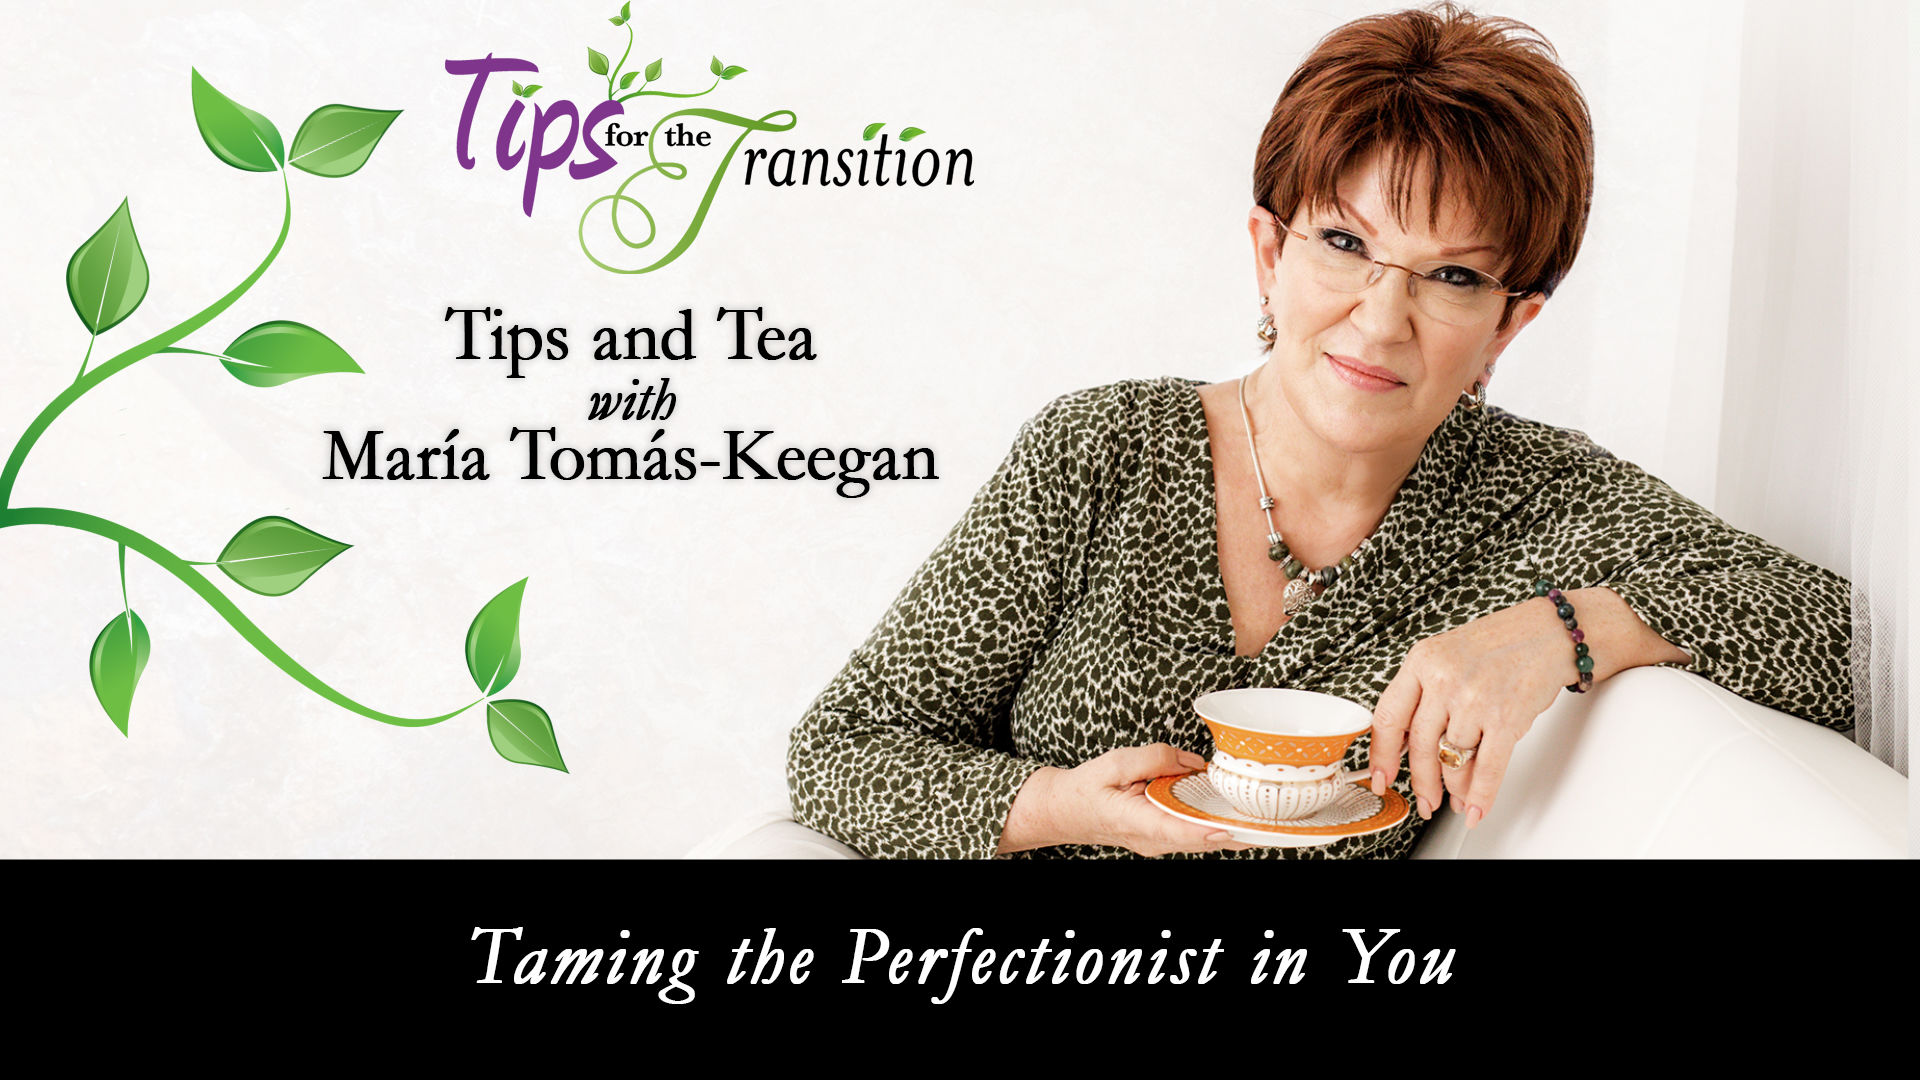 Taming the Perfectionist in You